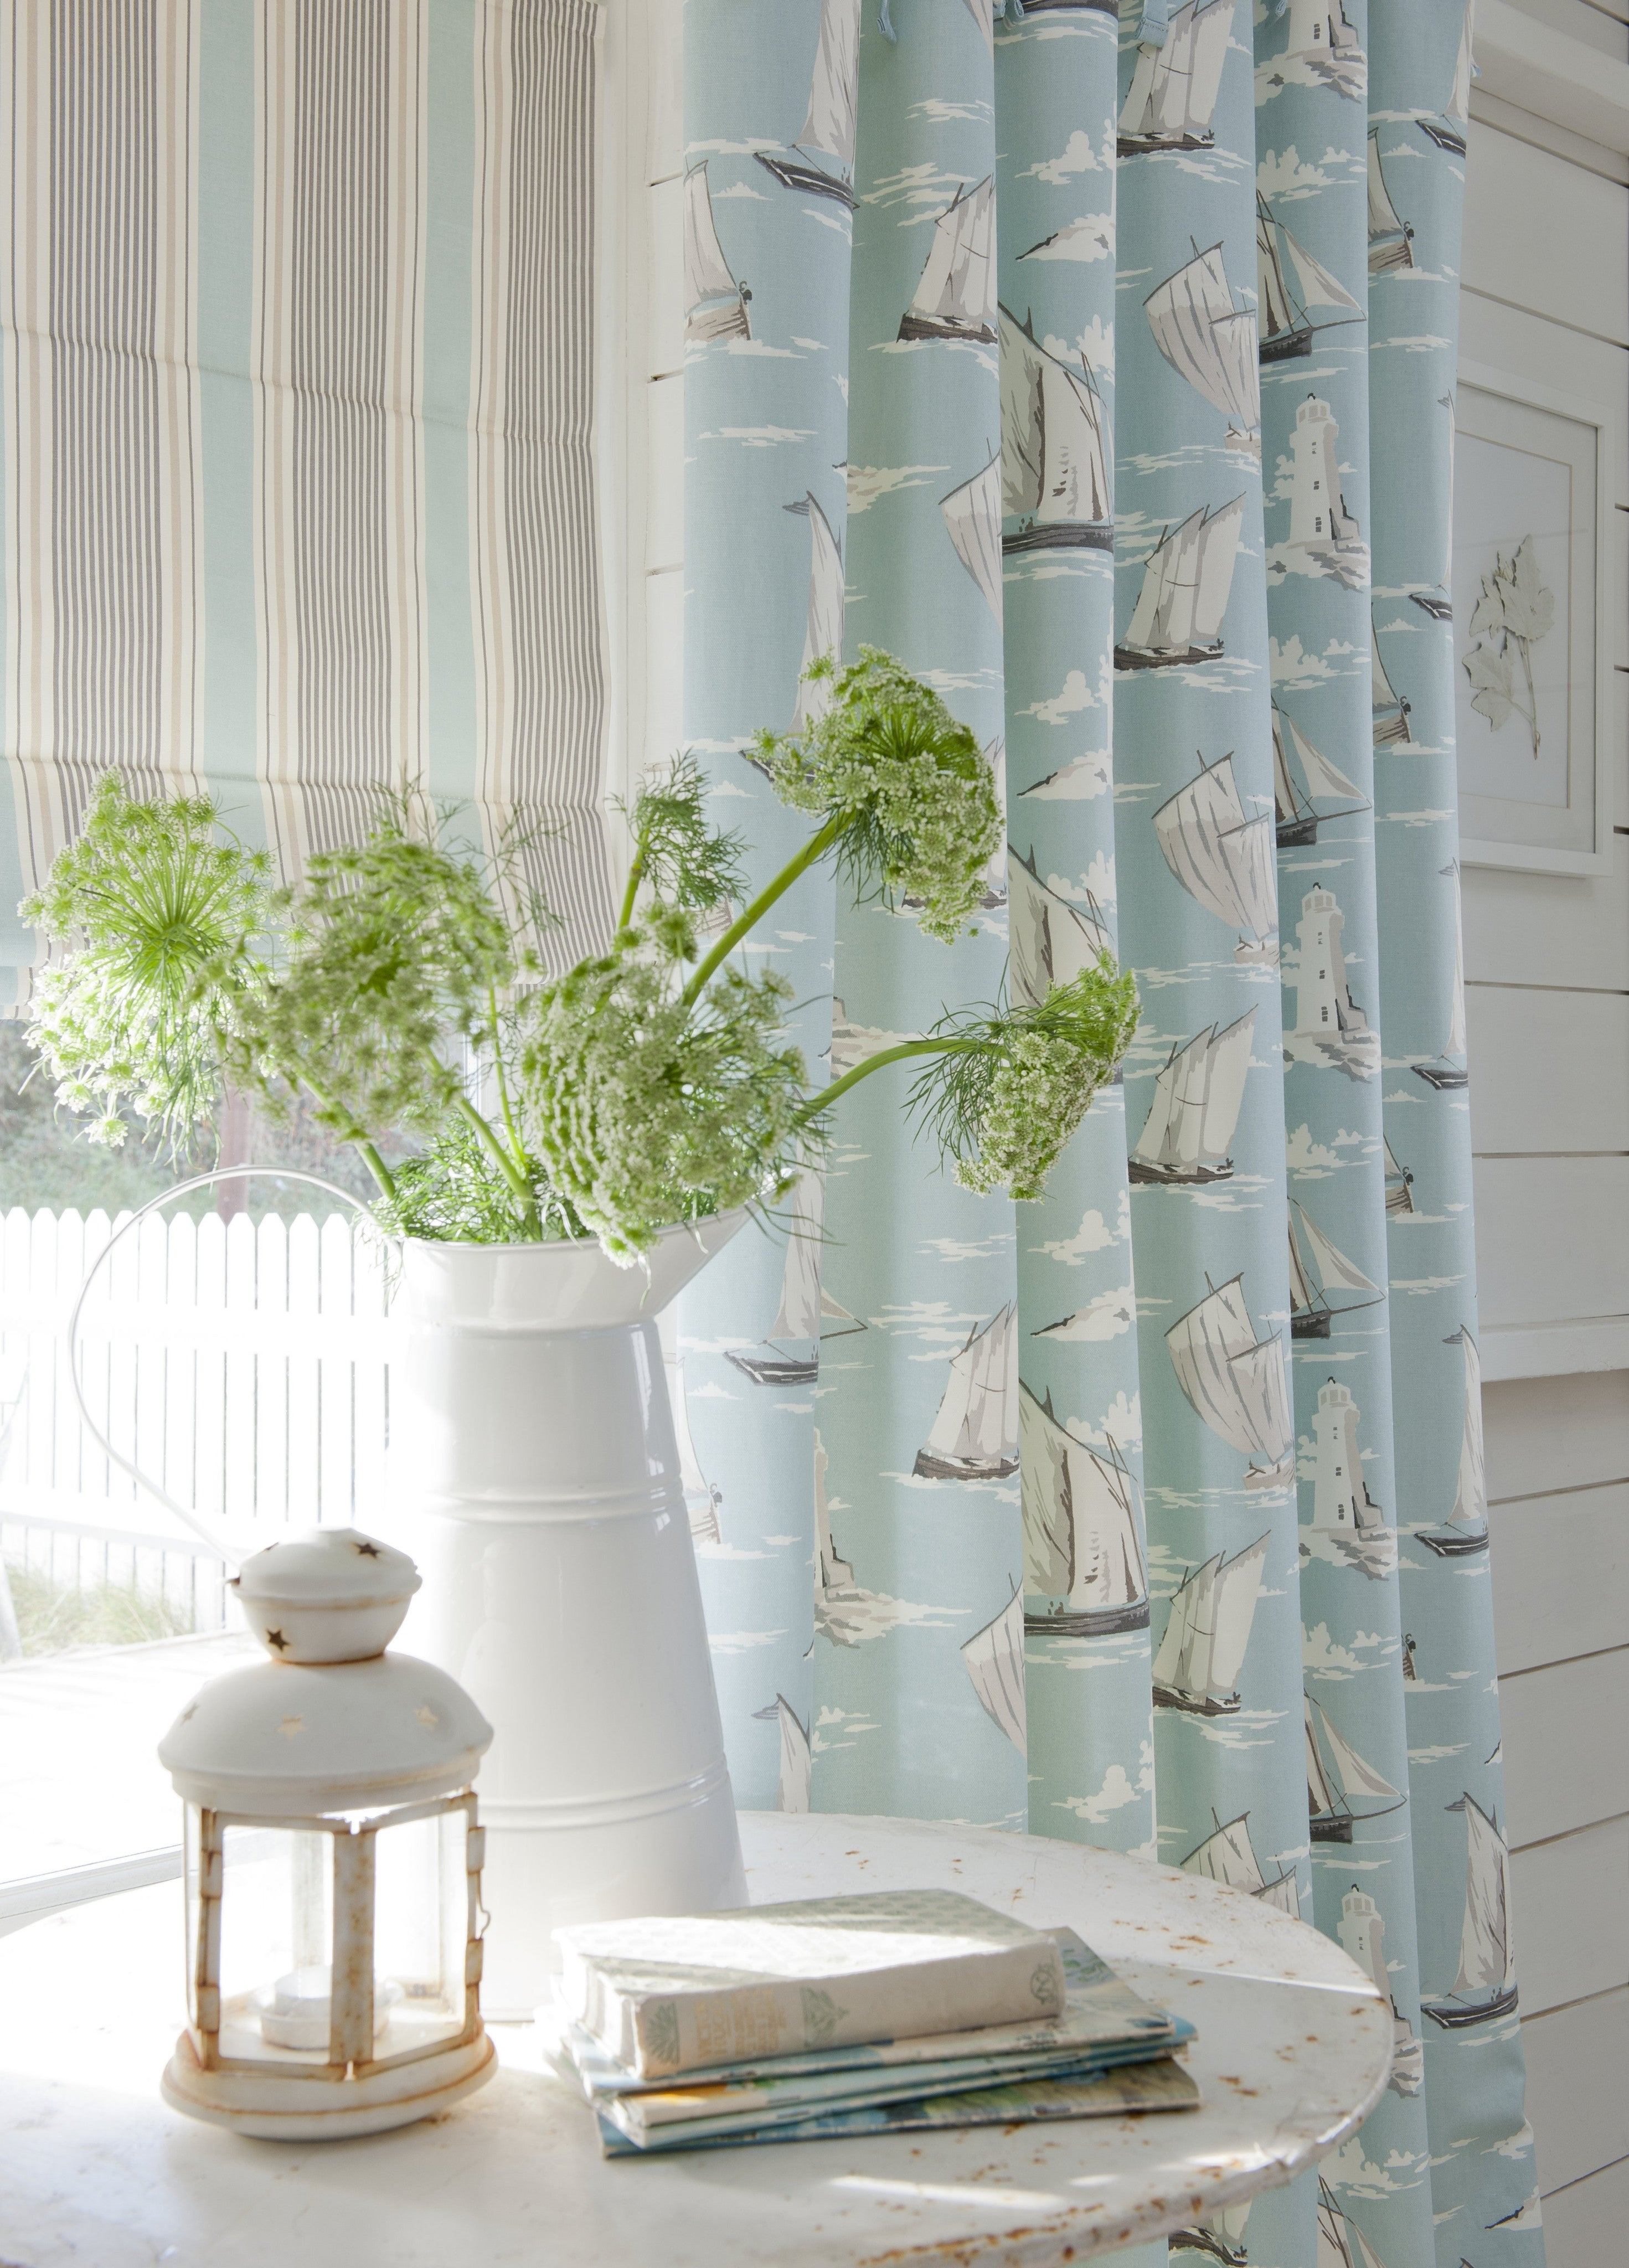 Sail Boats On A Light Blue Curtains, Striped Roman Blind And White Road Table With Flowers